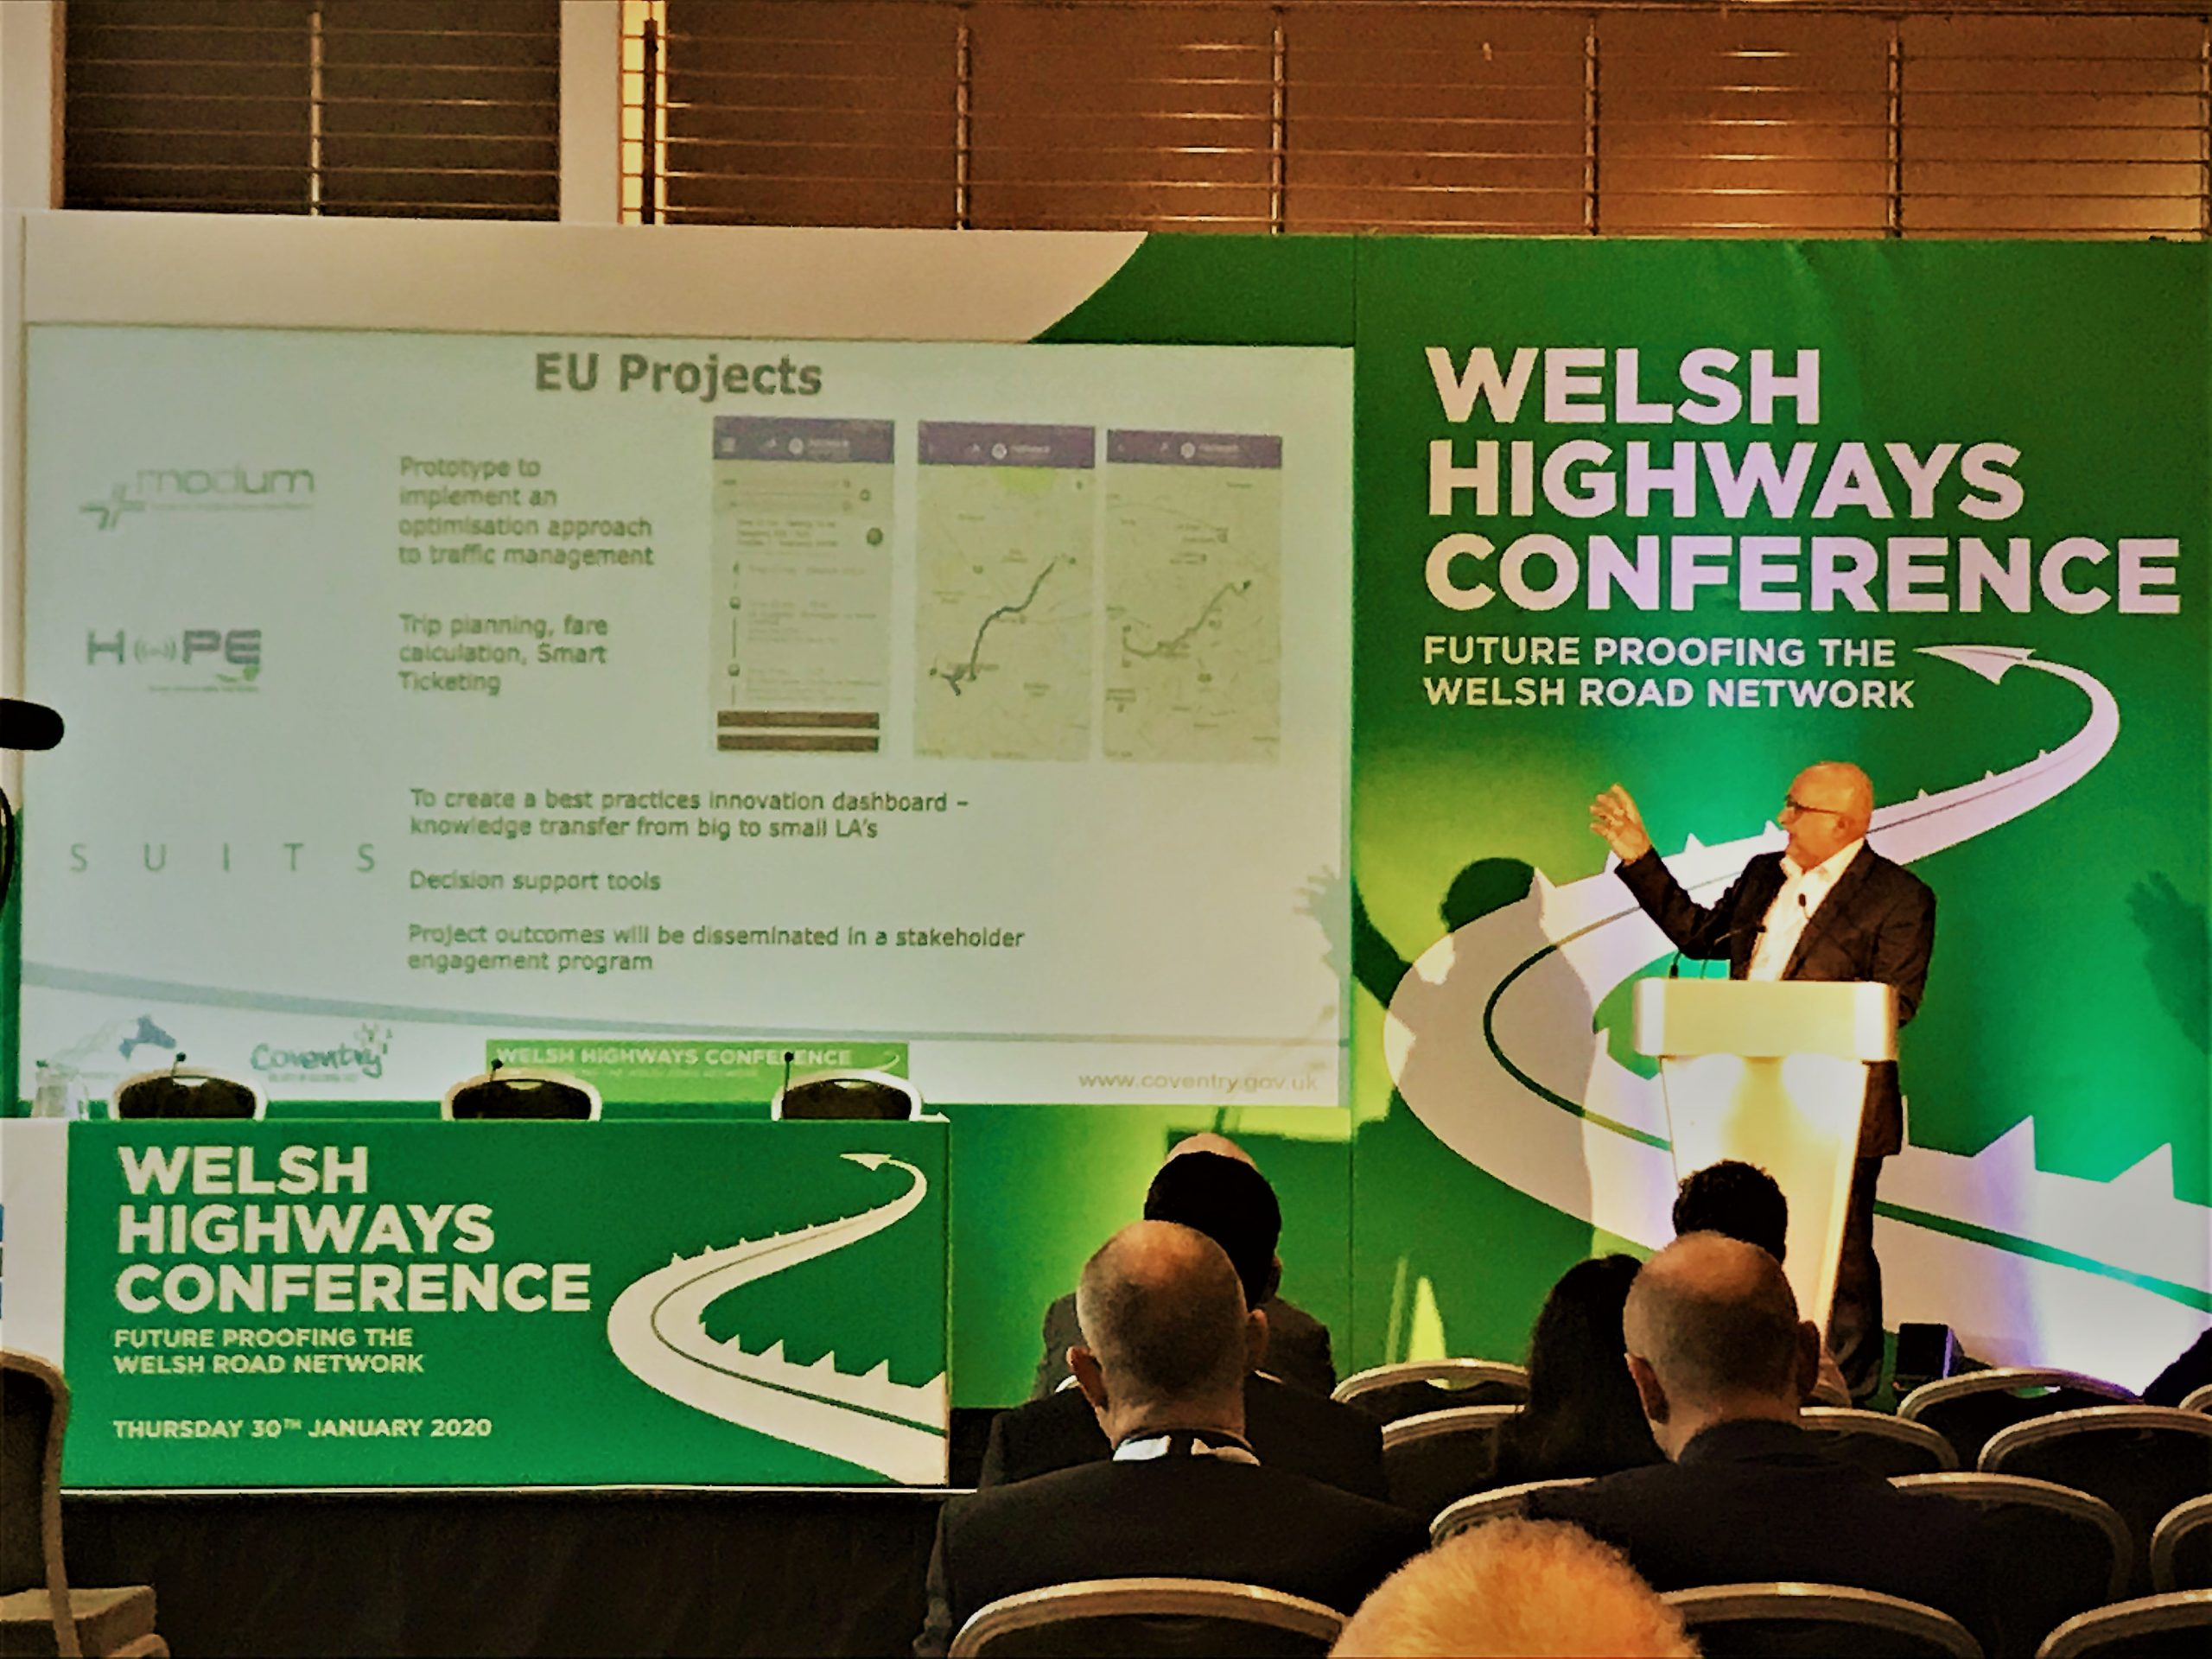 SUITS @Welsh Highways Conference 2020